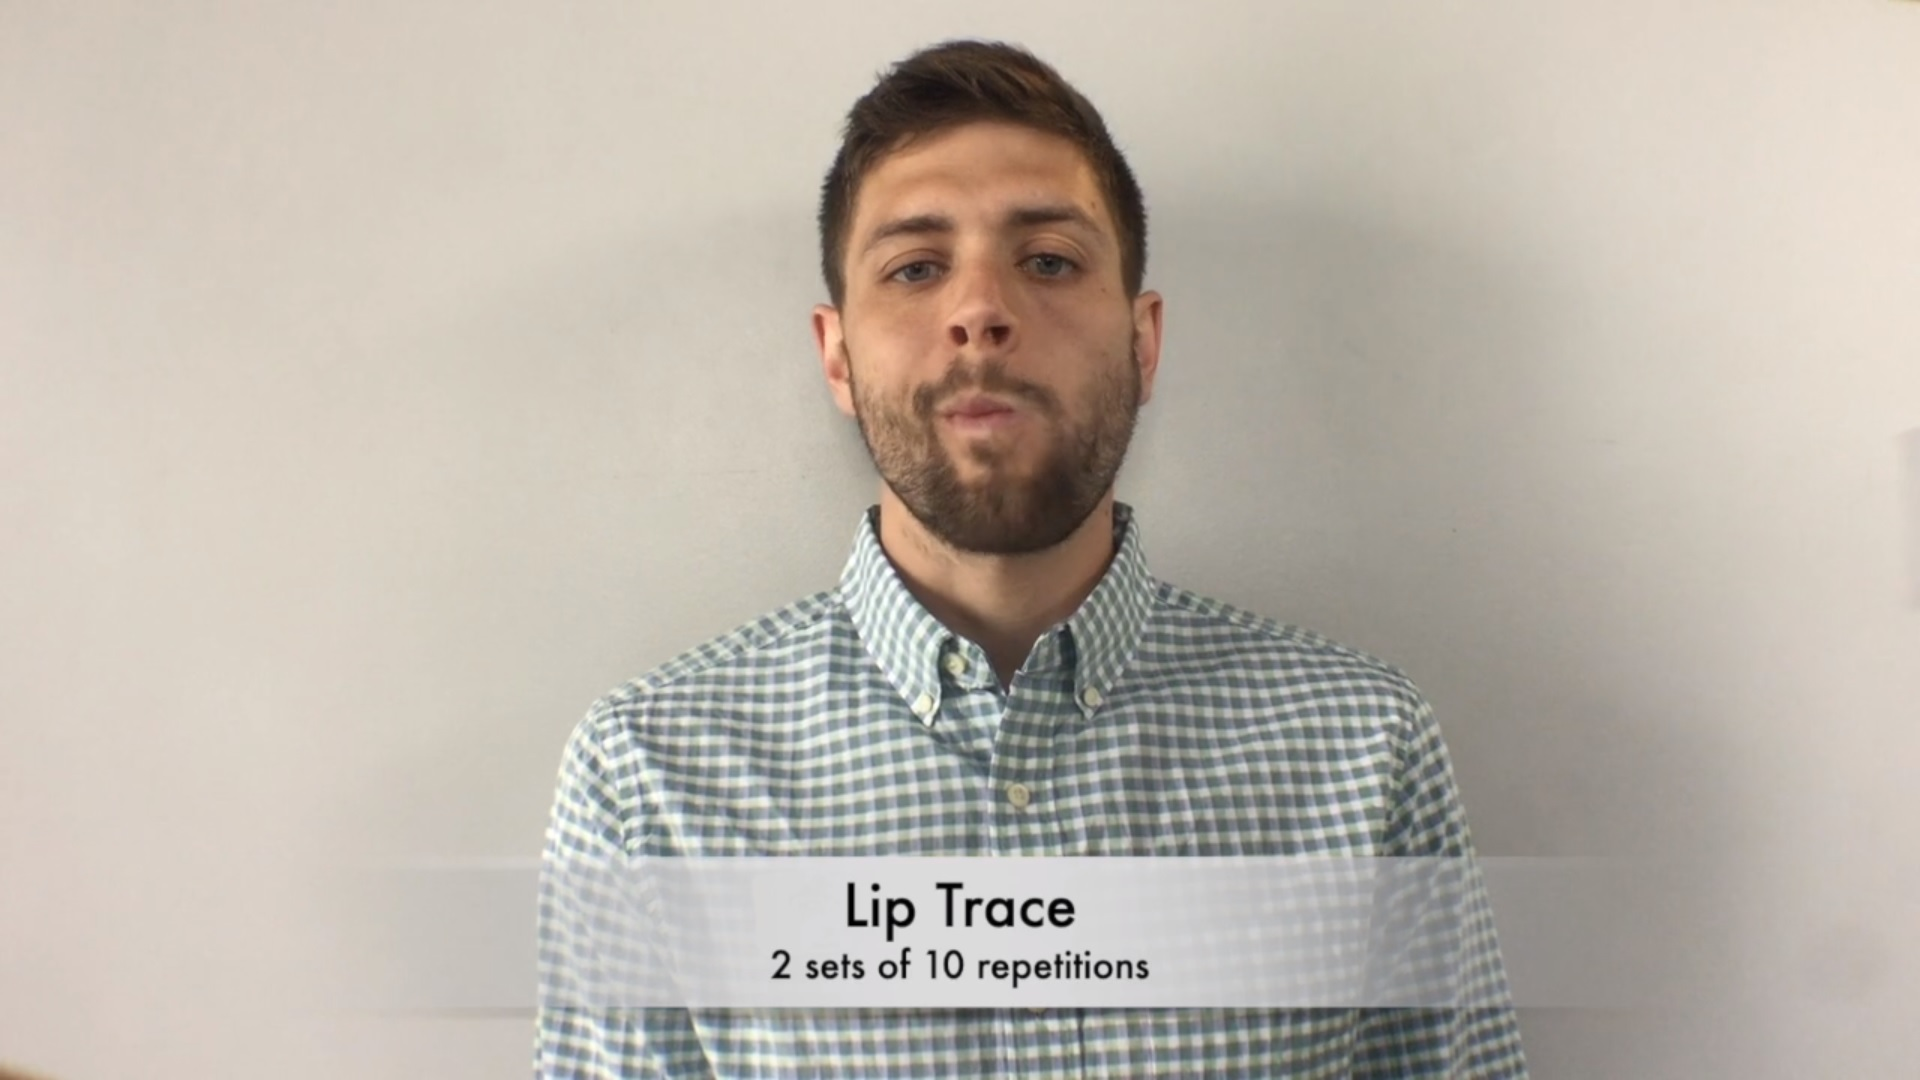 Lip trace pic, oral exercises article